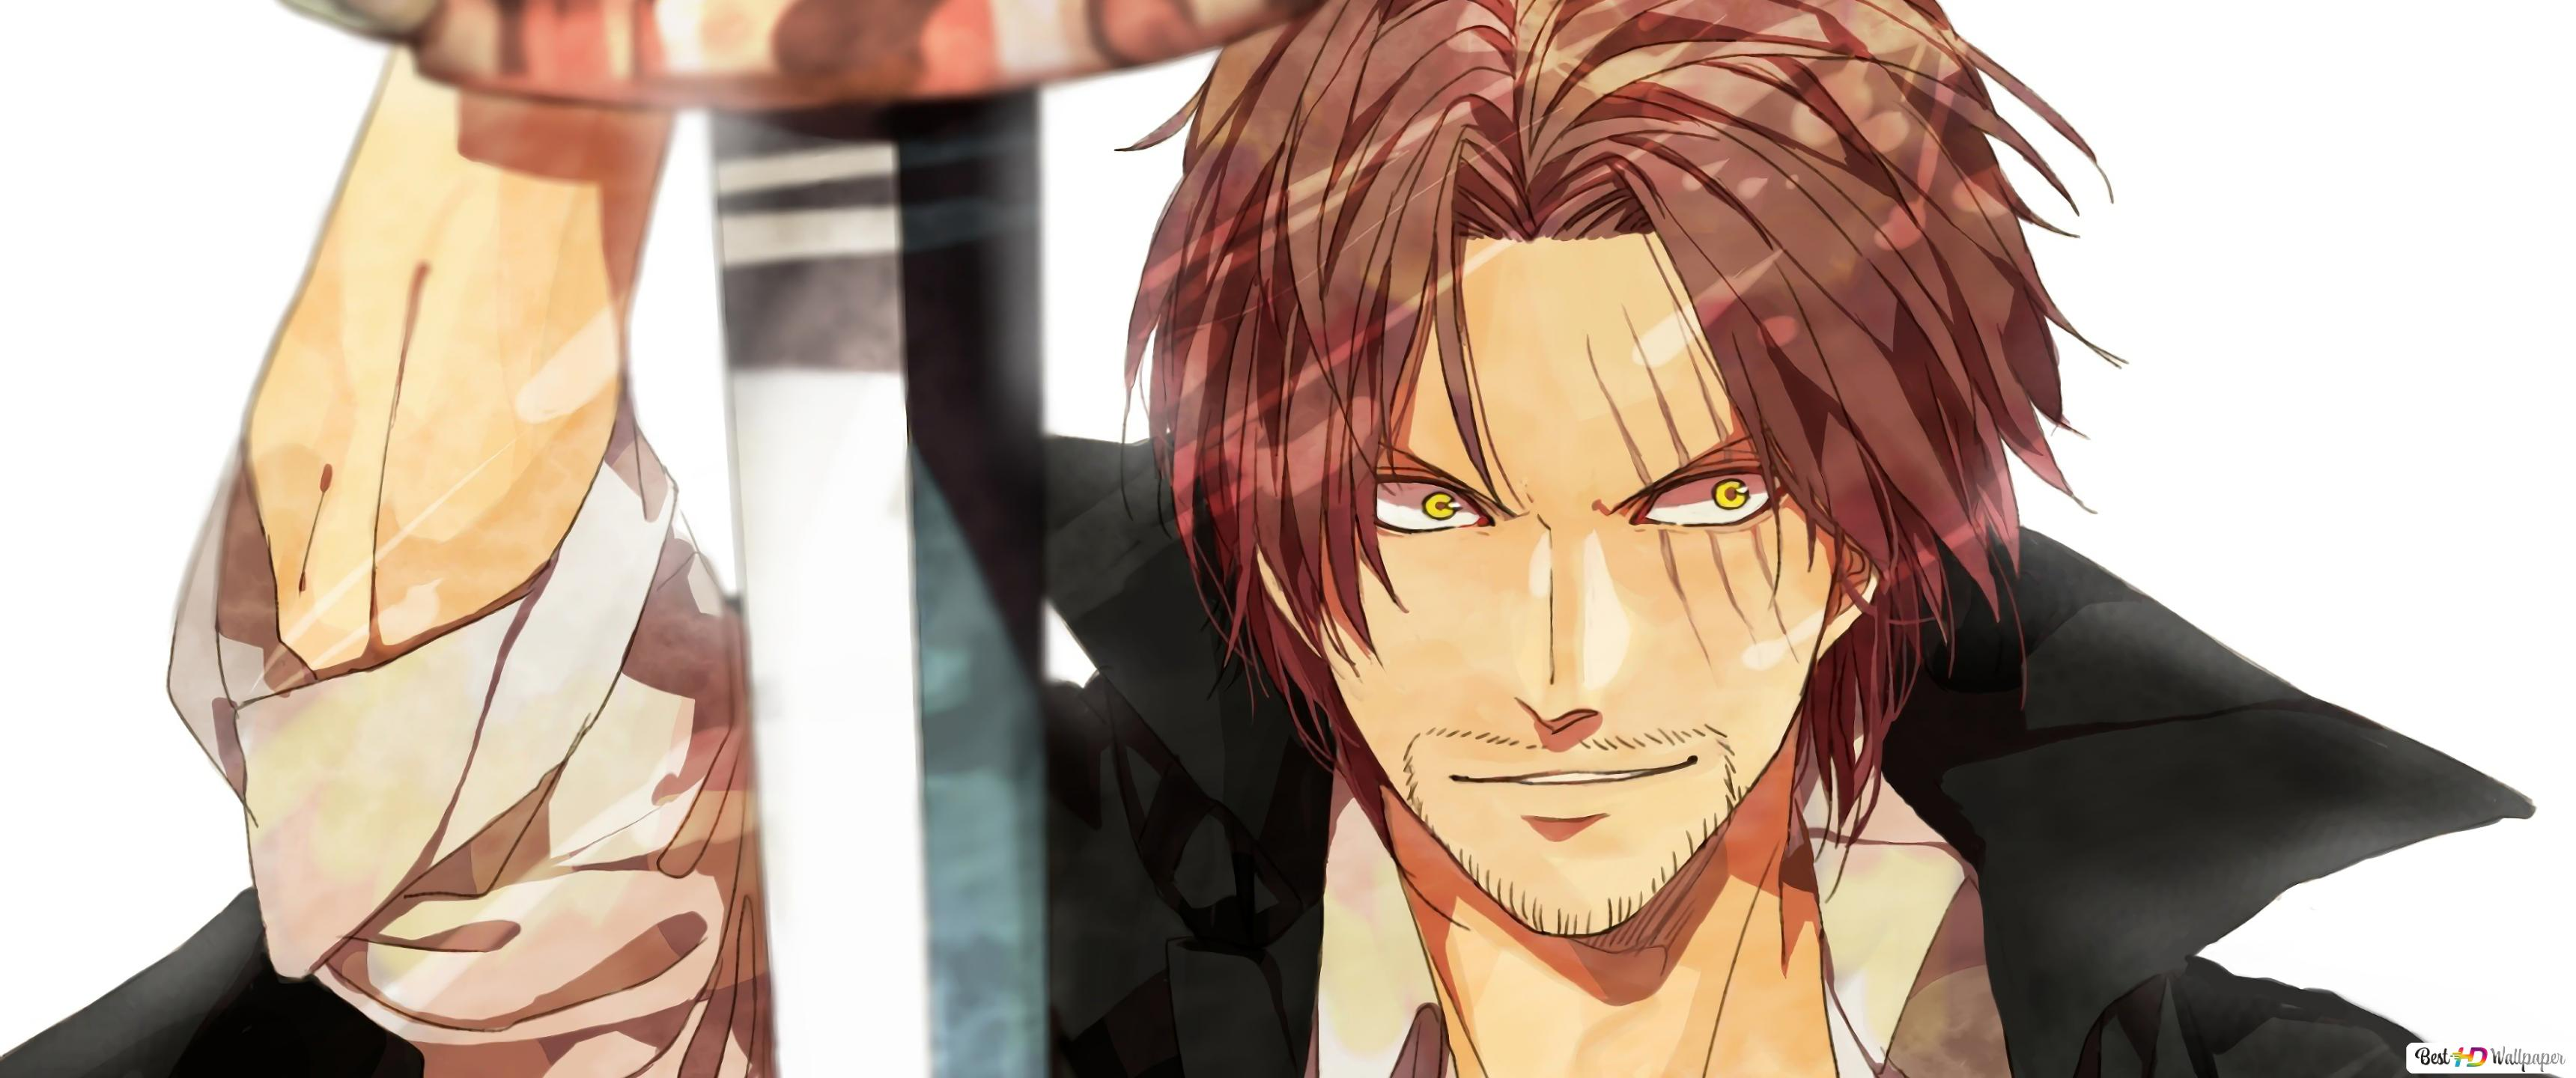 Red Haired Shanks One Piece Hd Wallpaper Download